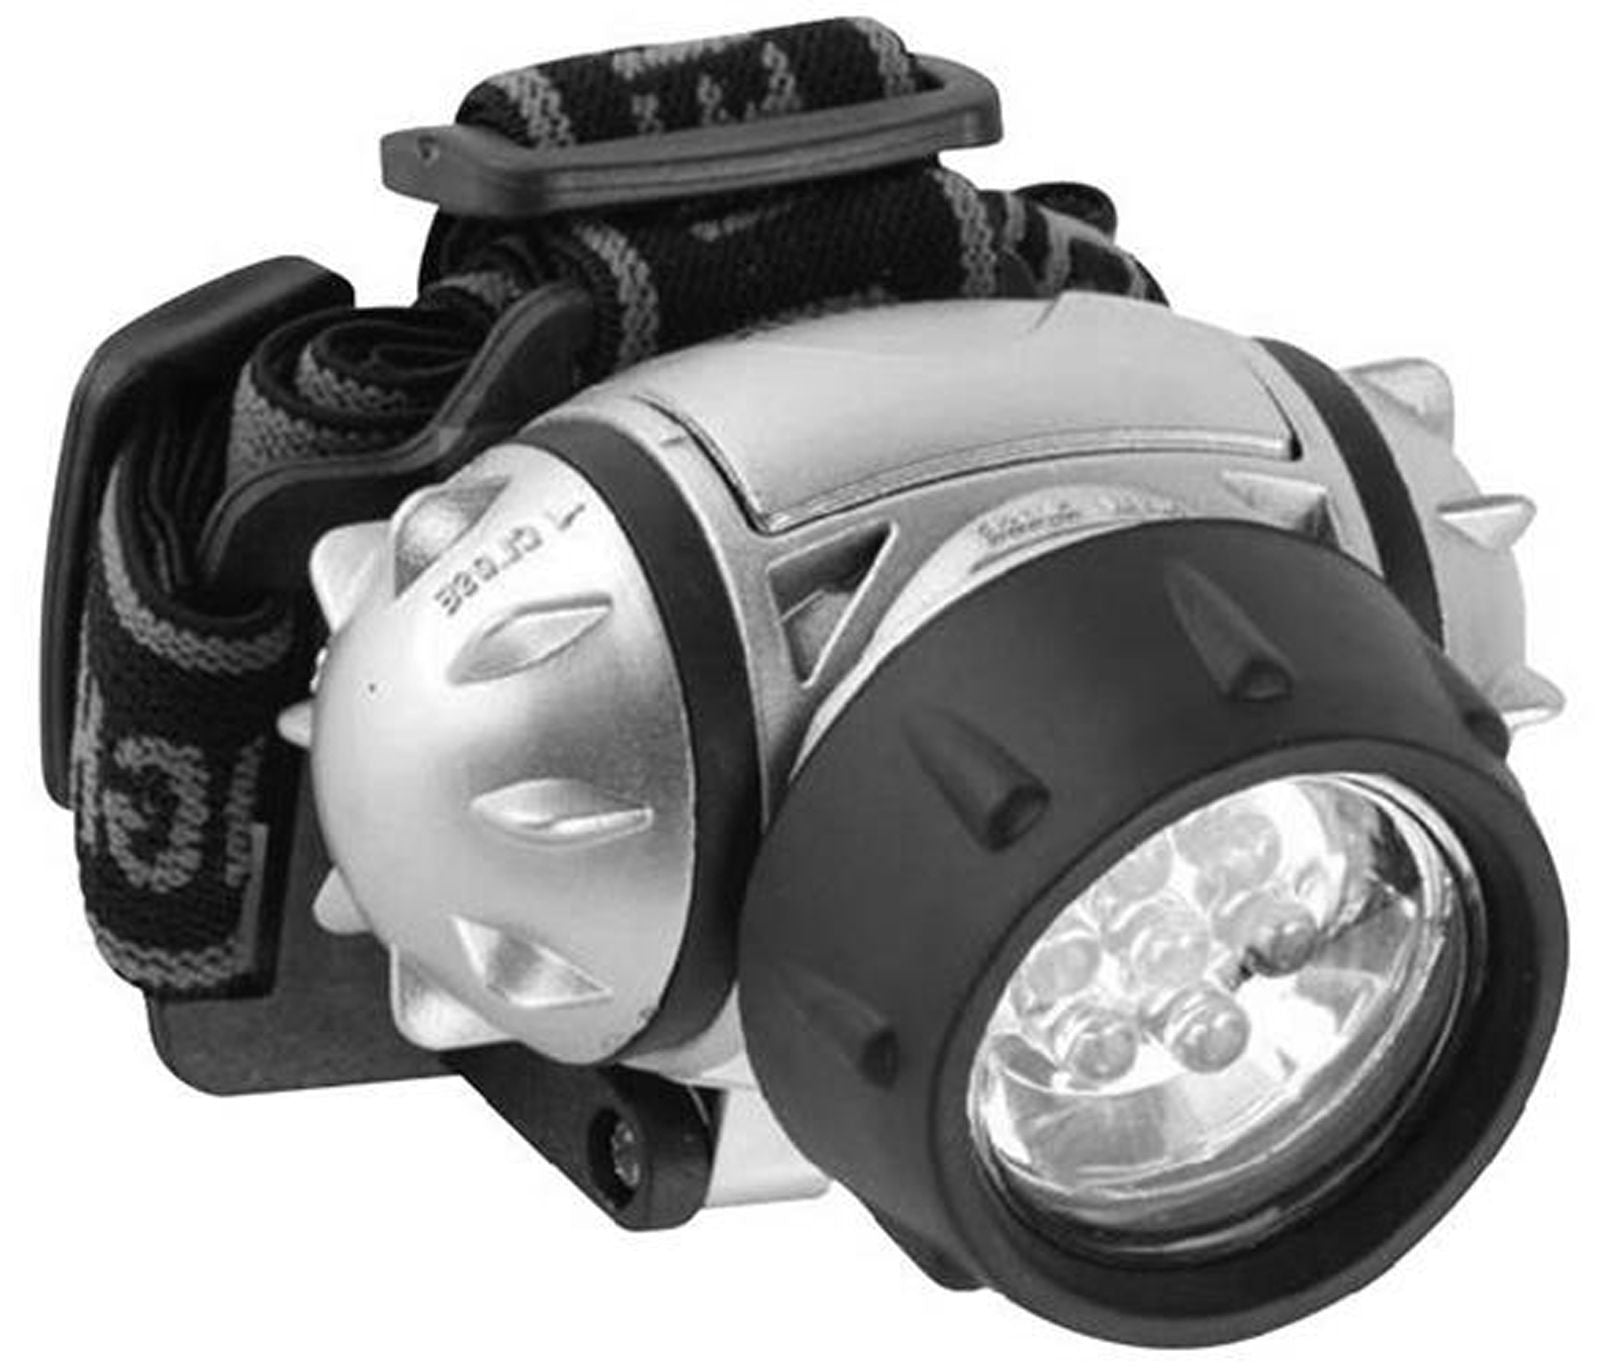 12-LED Headlamp with Adjustable Strap